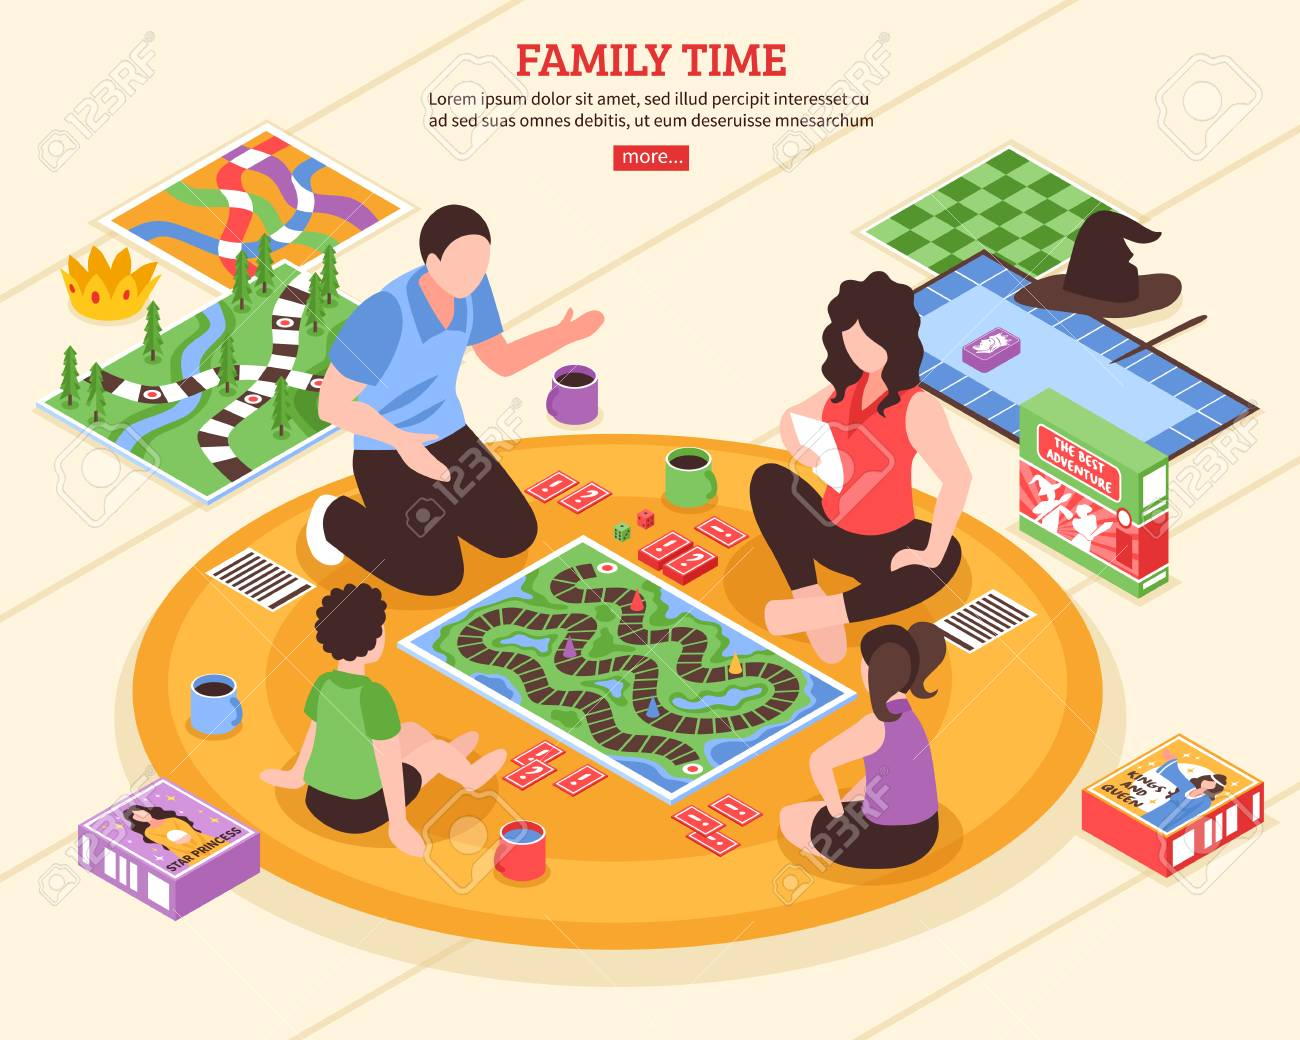 Family pastime scene with parents and kids playing board games on floor isometric vector illustration - 95258667